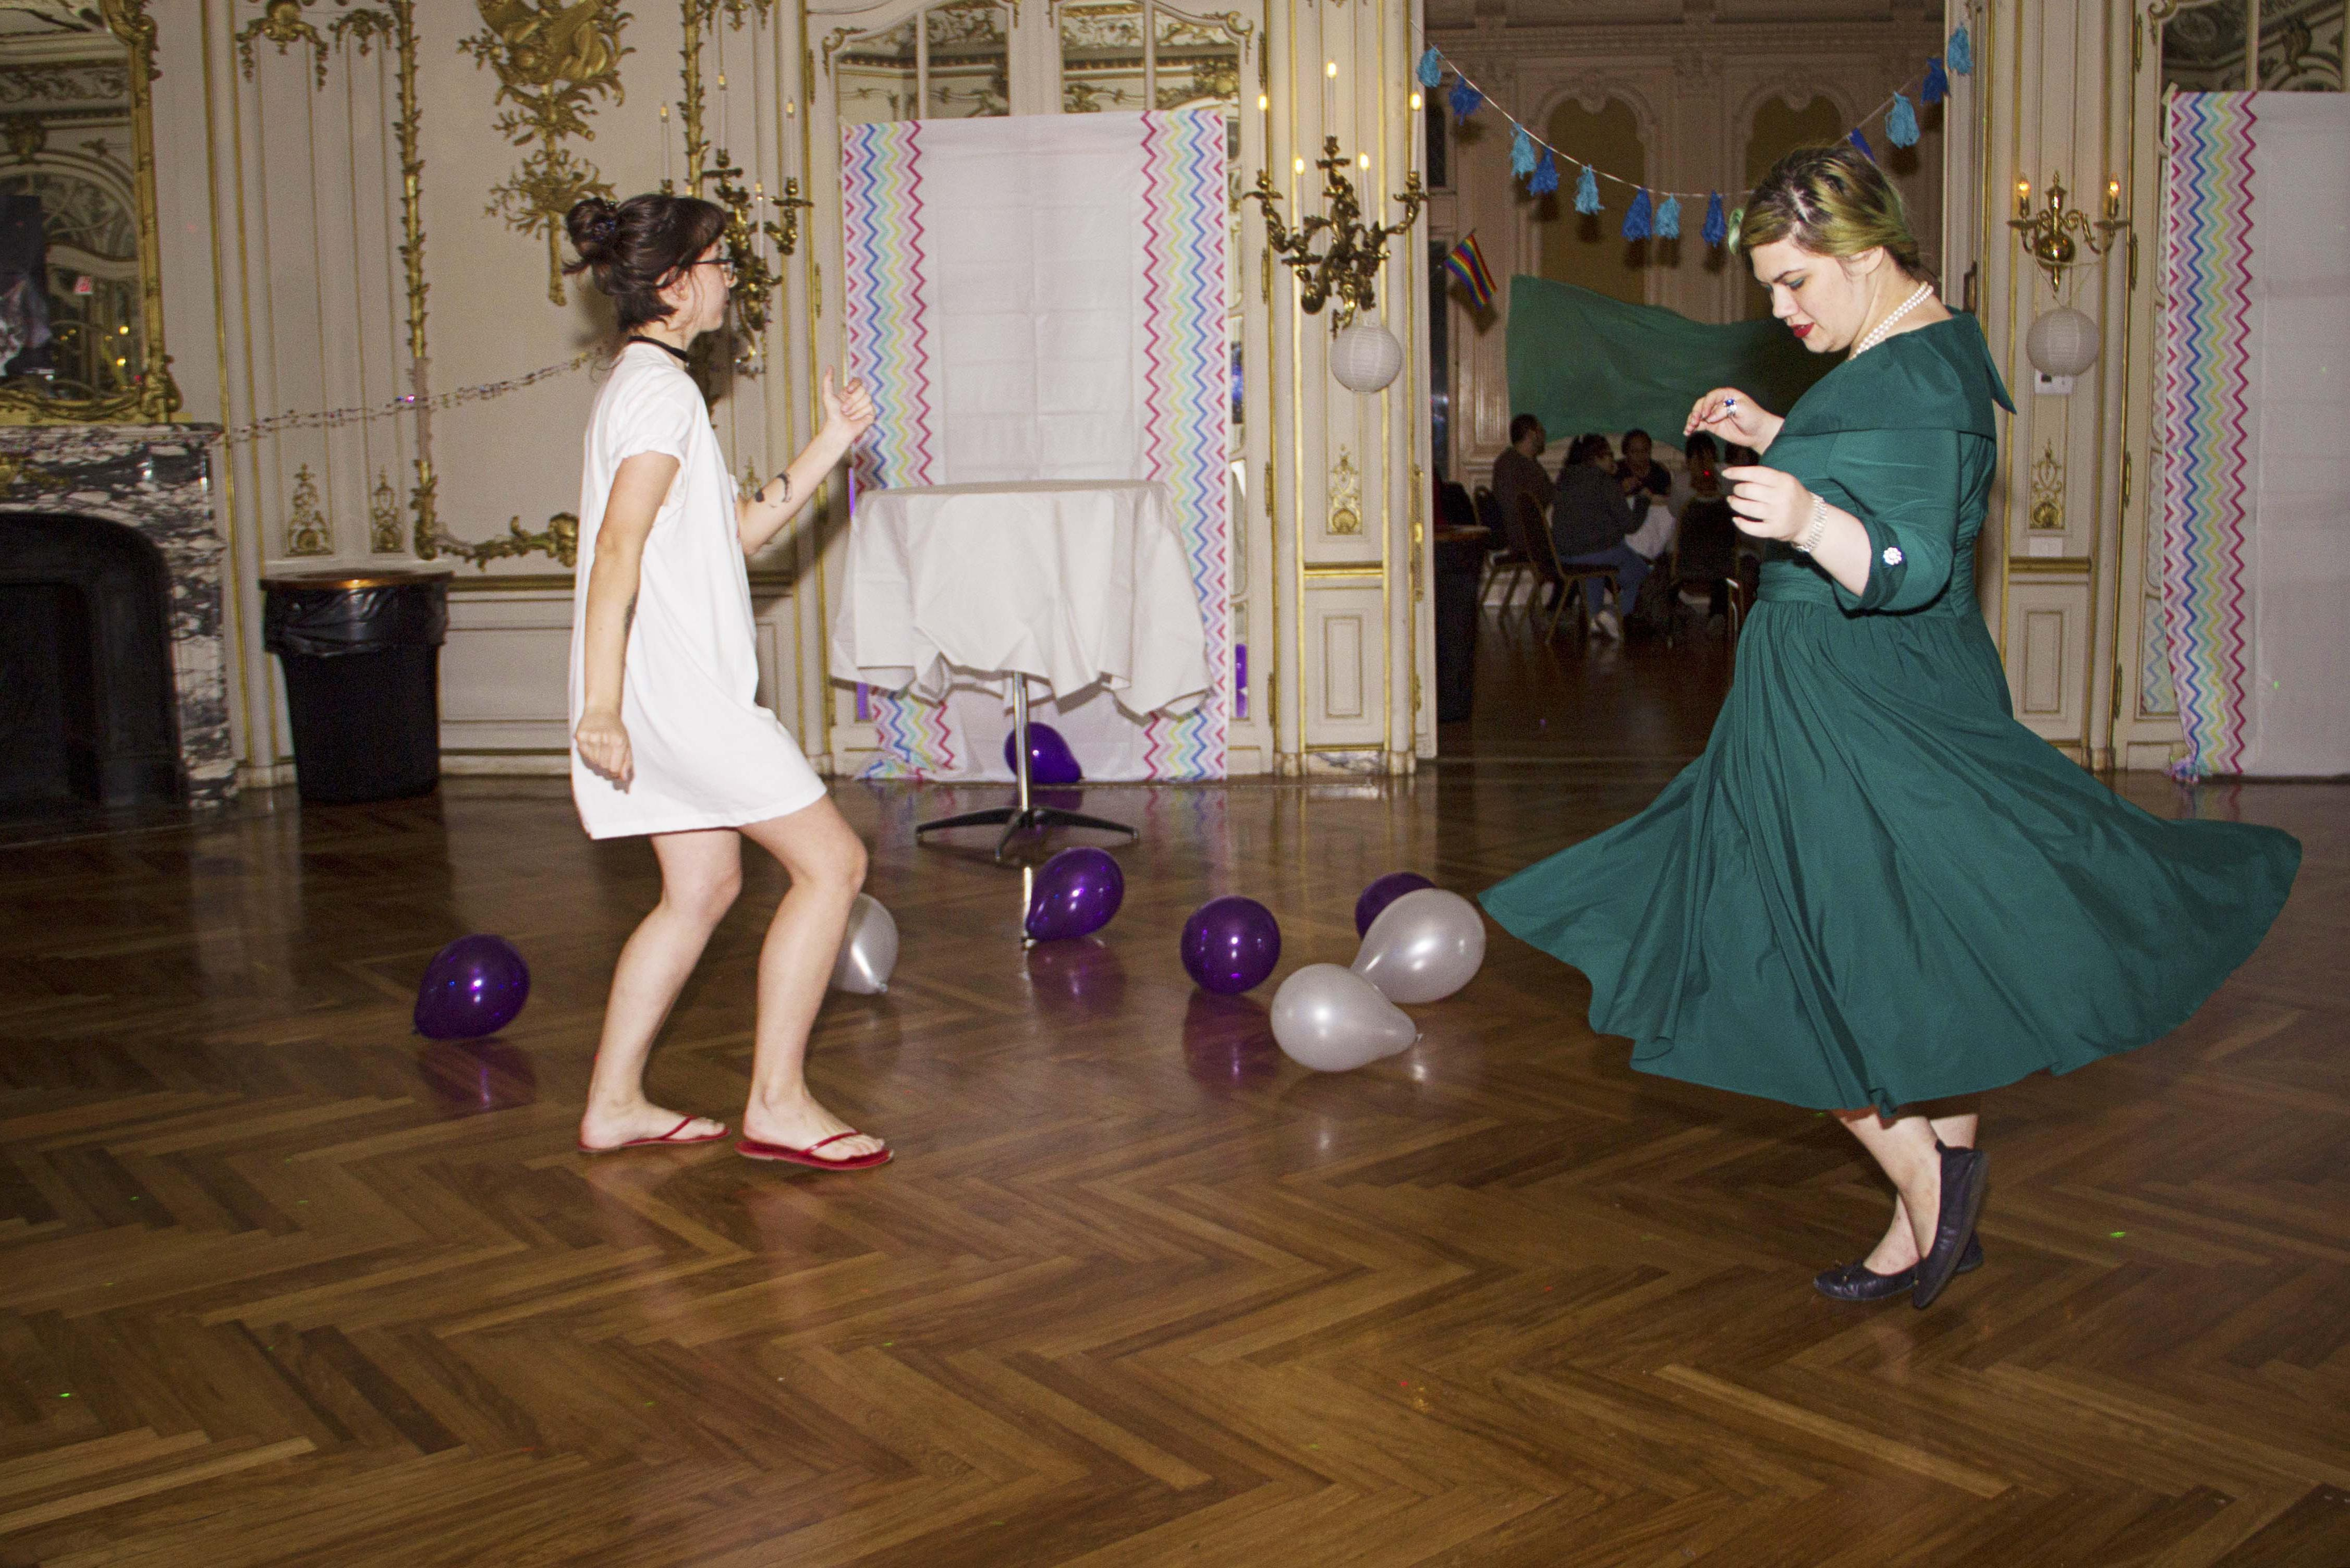 Two students wearing dresses dancing in the mirror room during PRIDE prom.